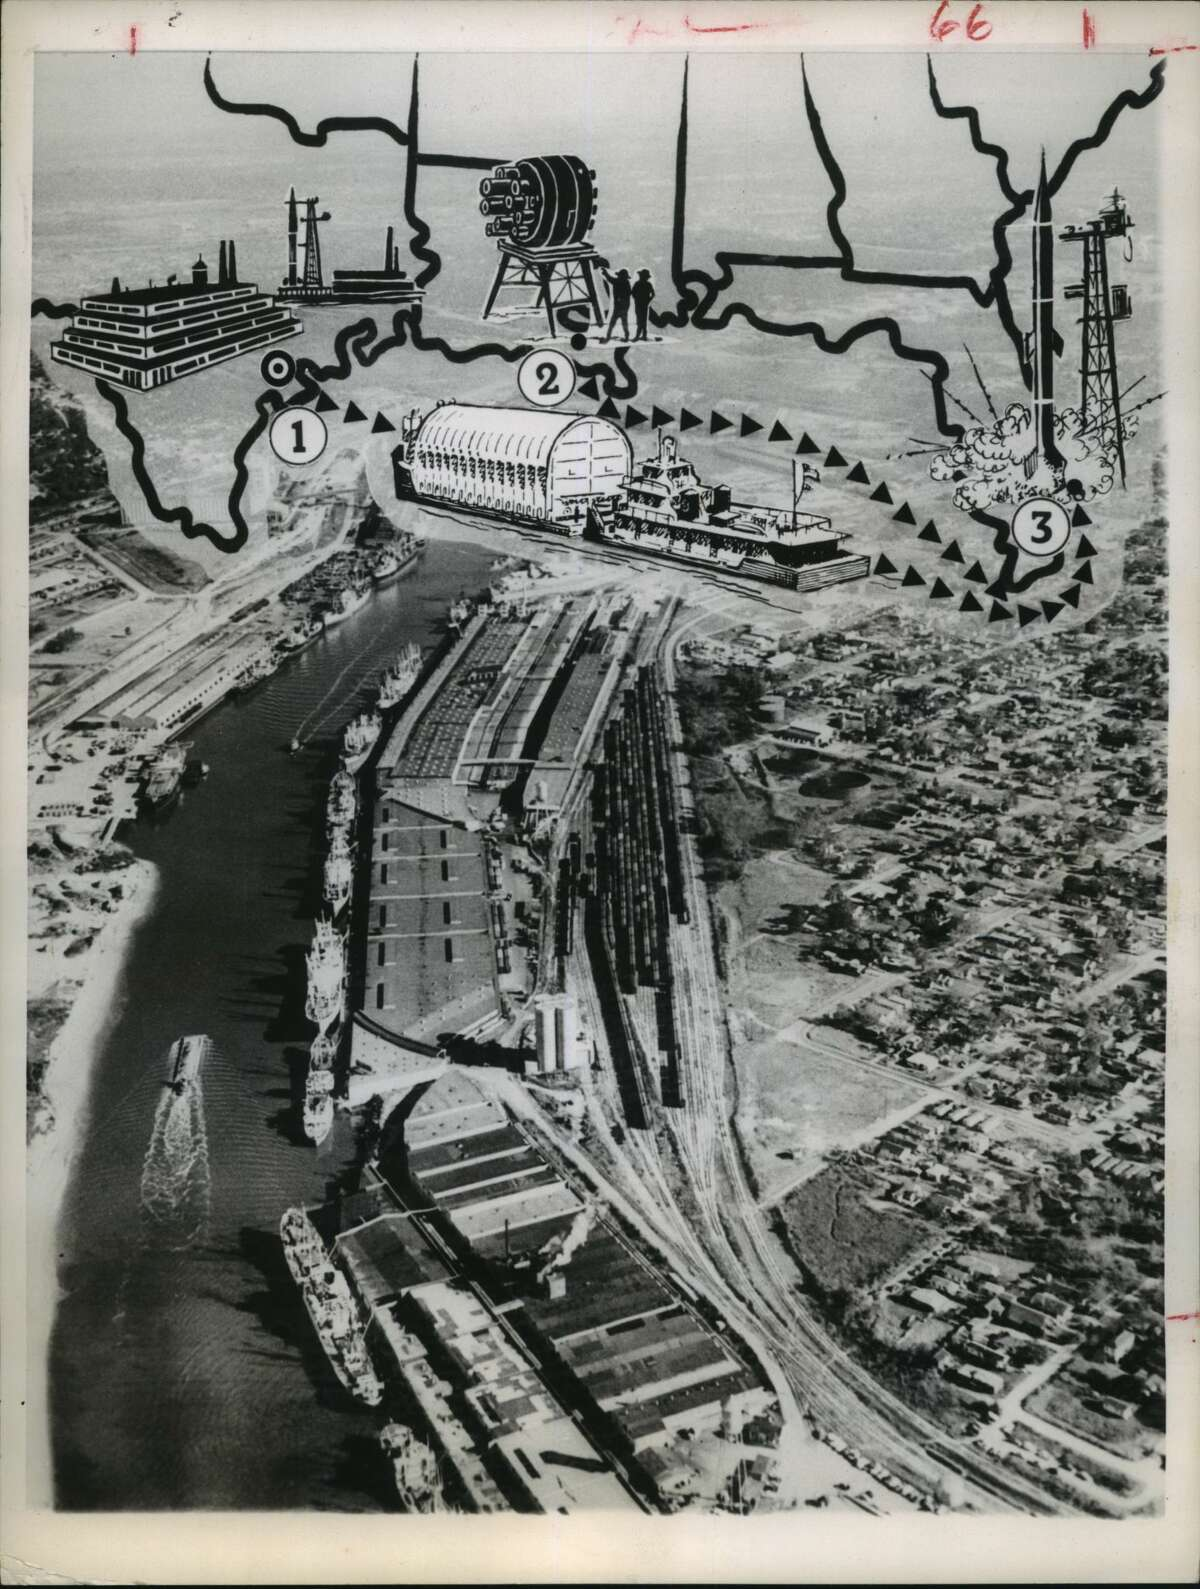 February 1962: The Houston Ship Channel provides a background for a picture map tracing future movement of space vehicles designed to reach the moon.